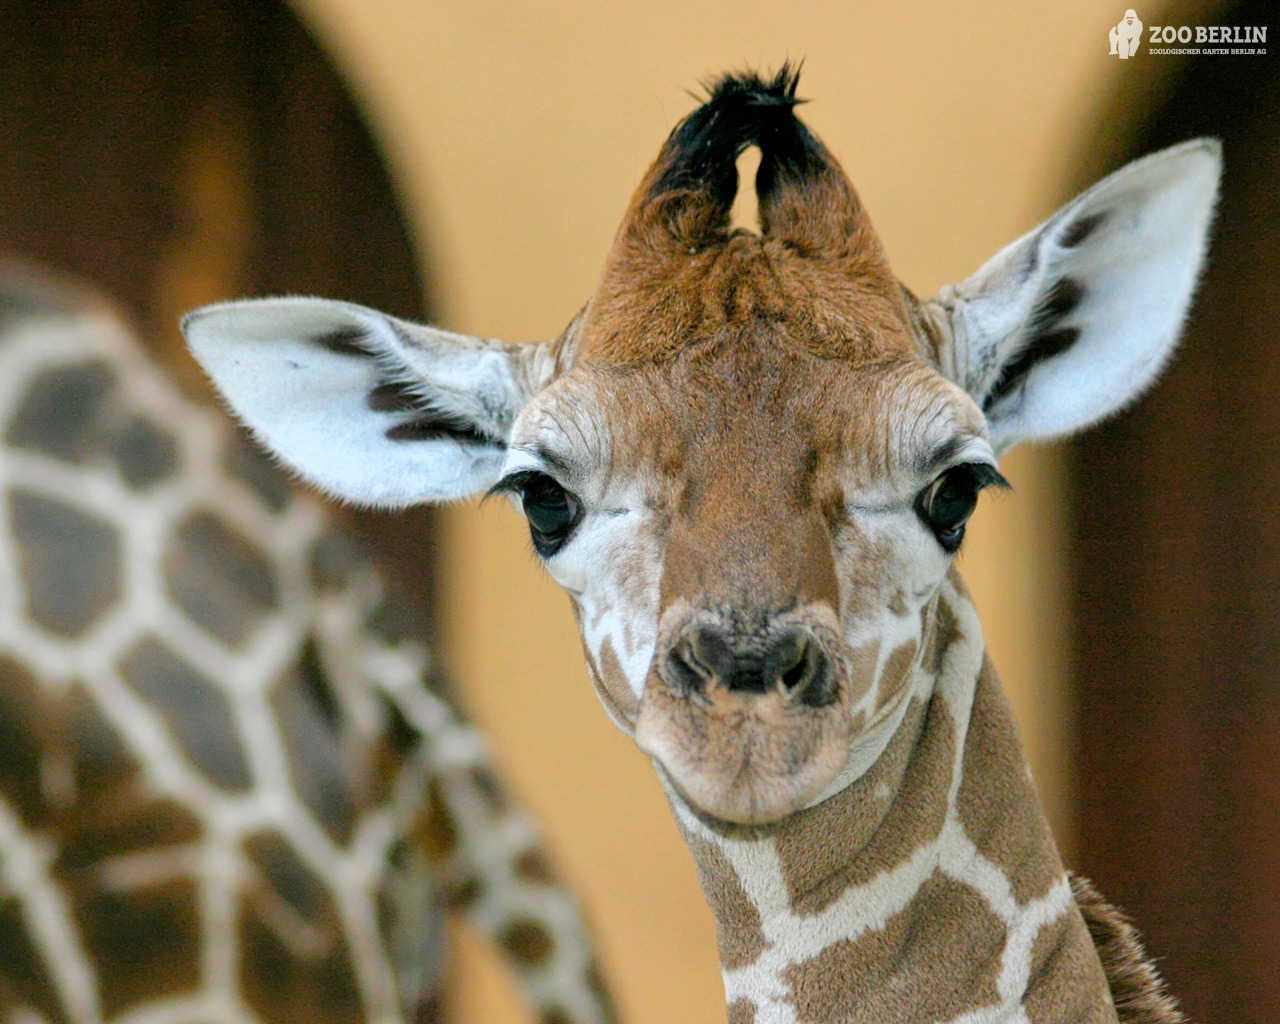 Giraffe - 11 photo